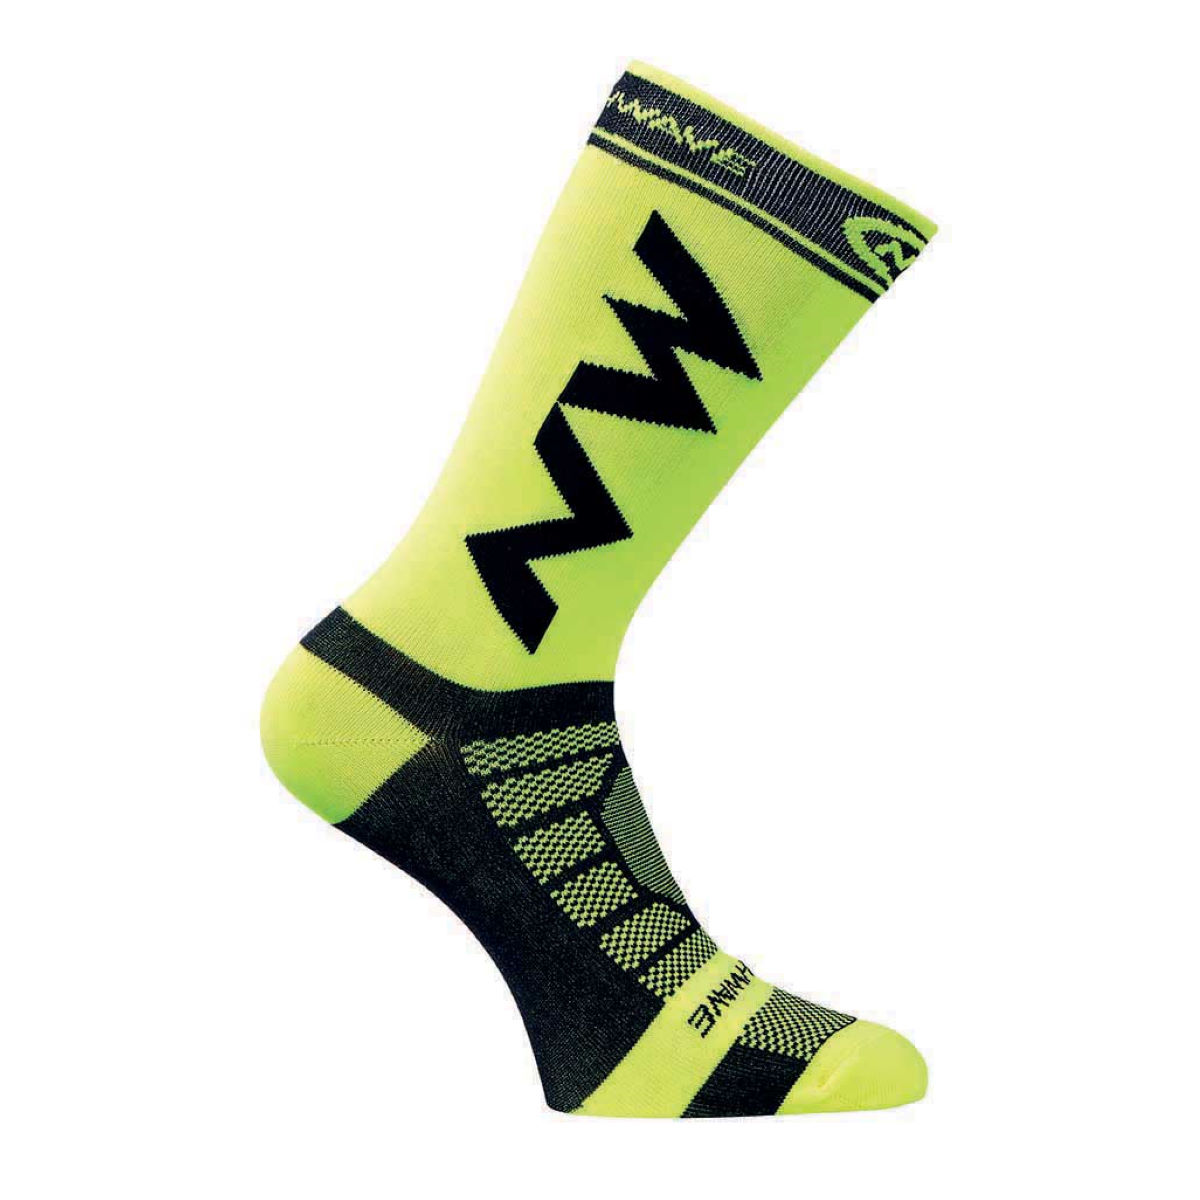 Chaussettes Northwave Extreme Light Pro - S Yellow Fluo/Black